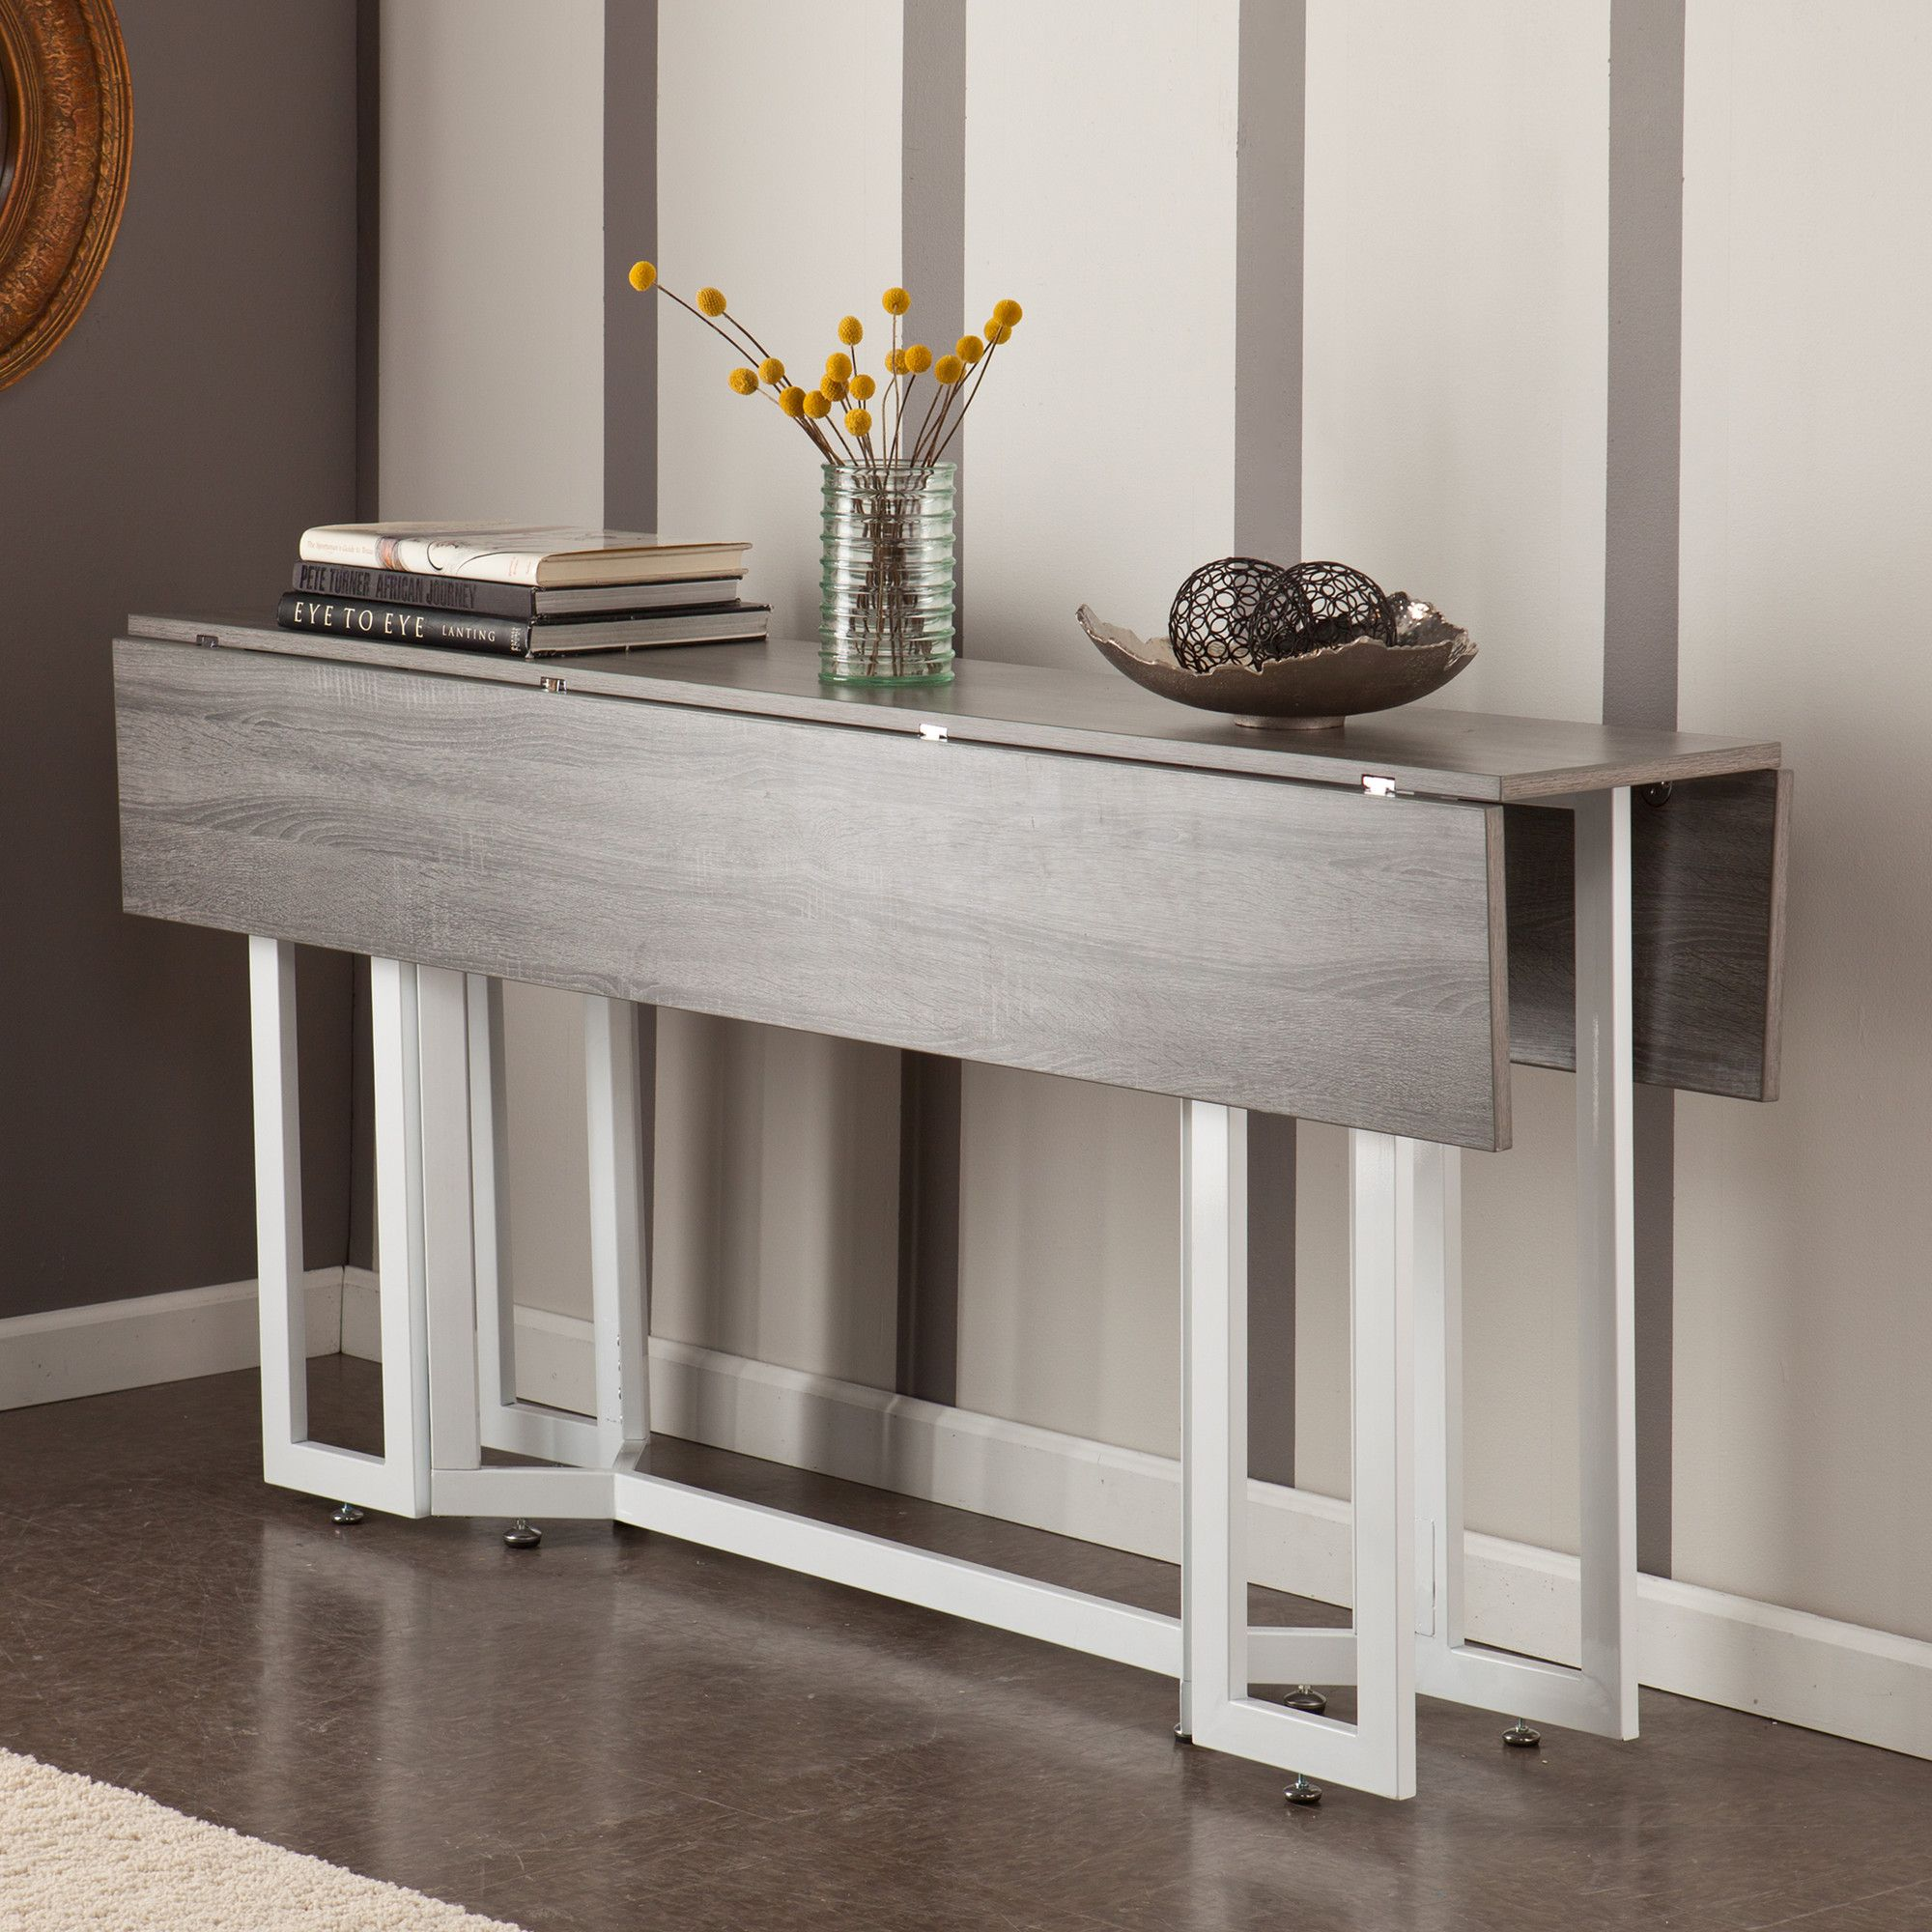 Modern Drop Leaf Tables Small Spaces Holly And Martin Driness Drop Leaf Dining Console Table